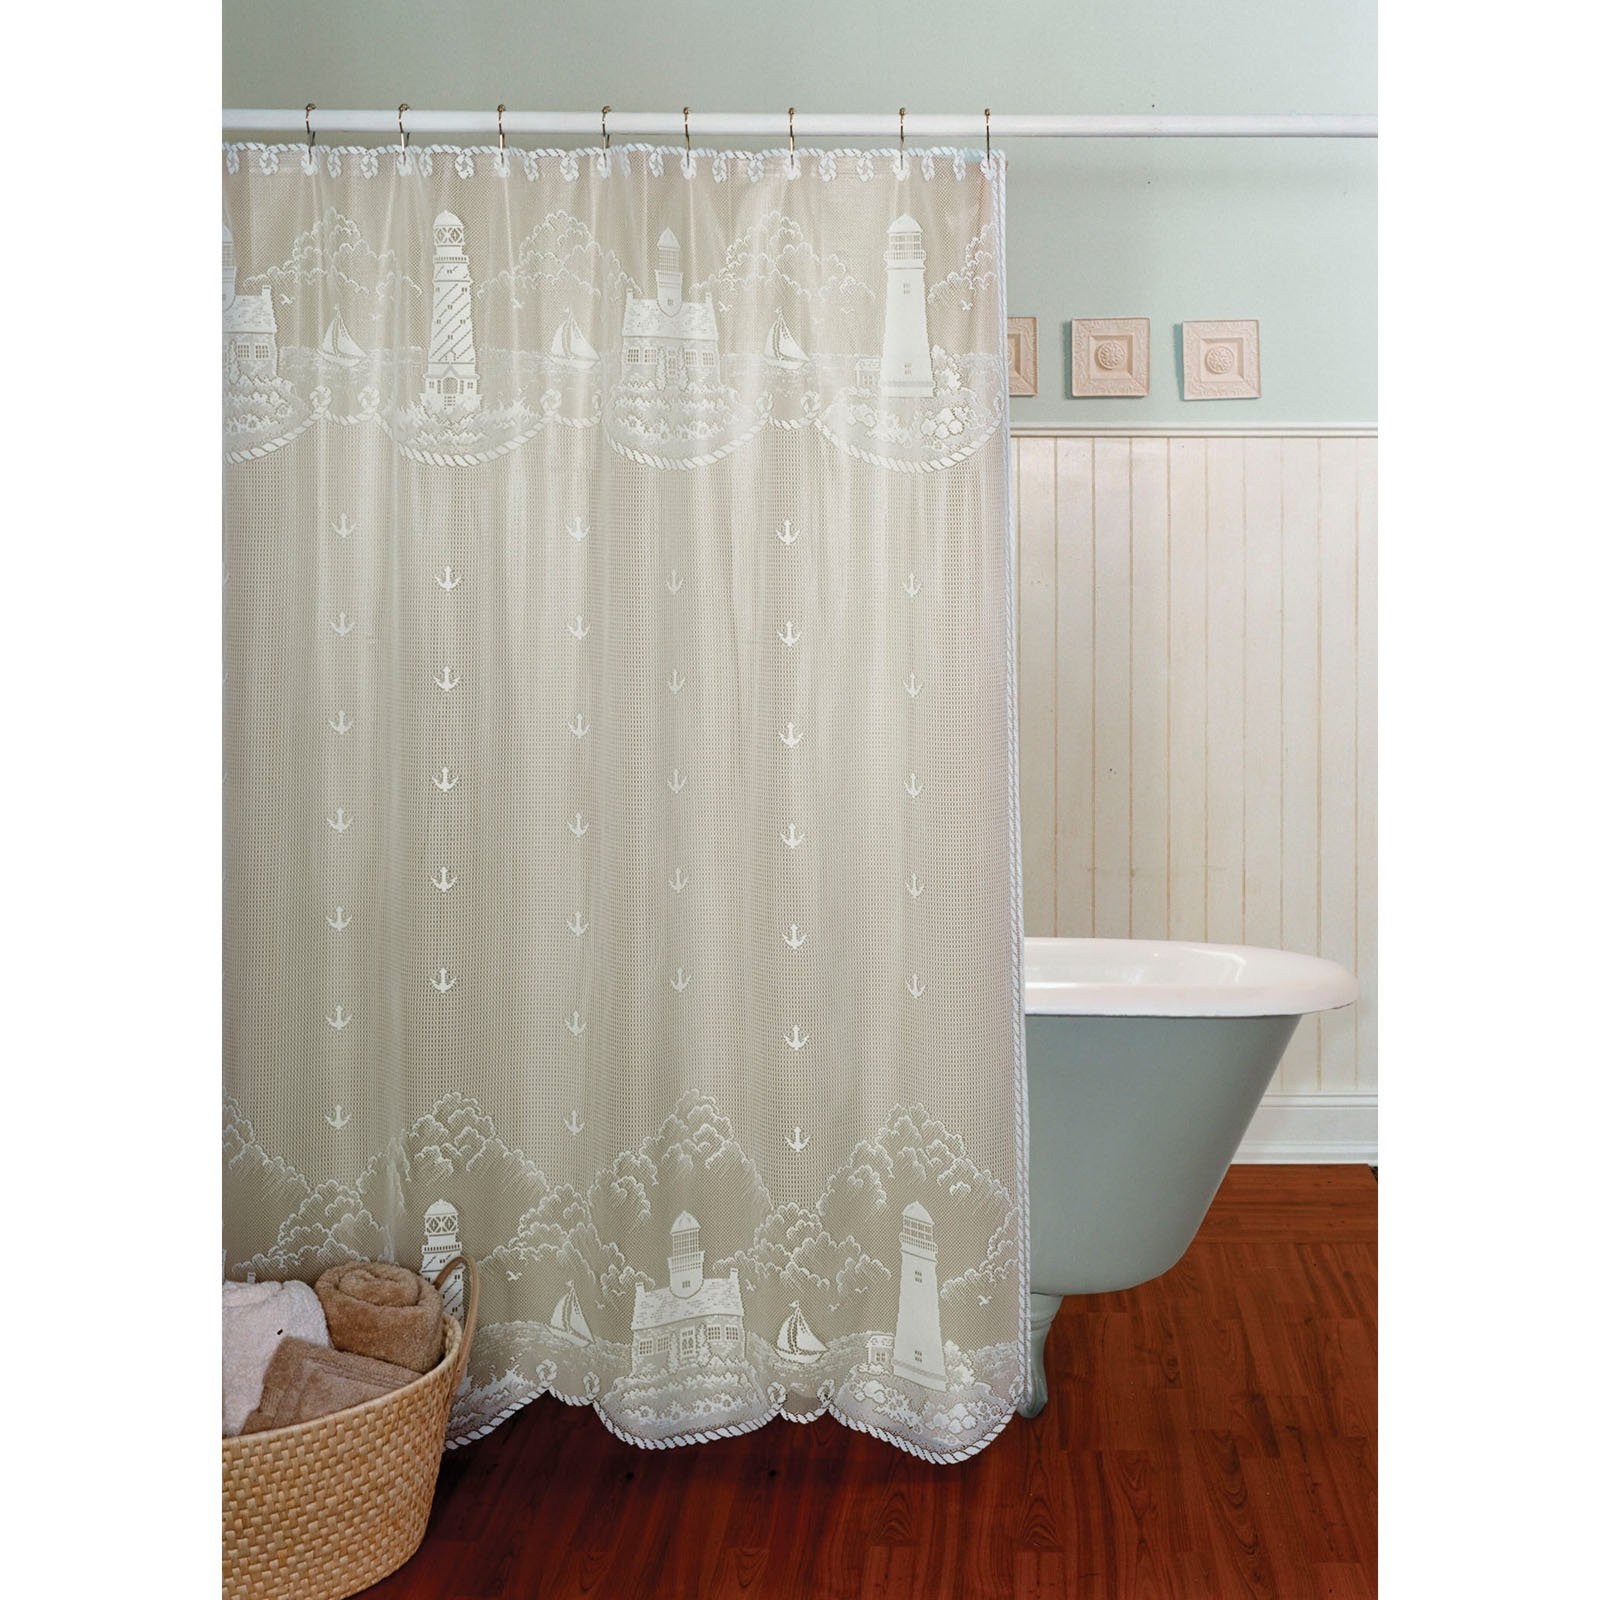 Decor Awesome Curtain Rods Bed Bath And Beyond For Minimalist With Regard To Nautical Curtain Rods (Image 13 of 25)